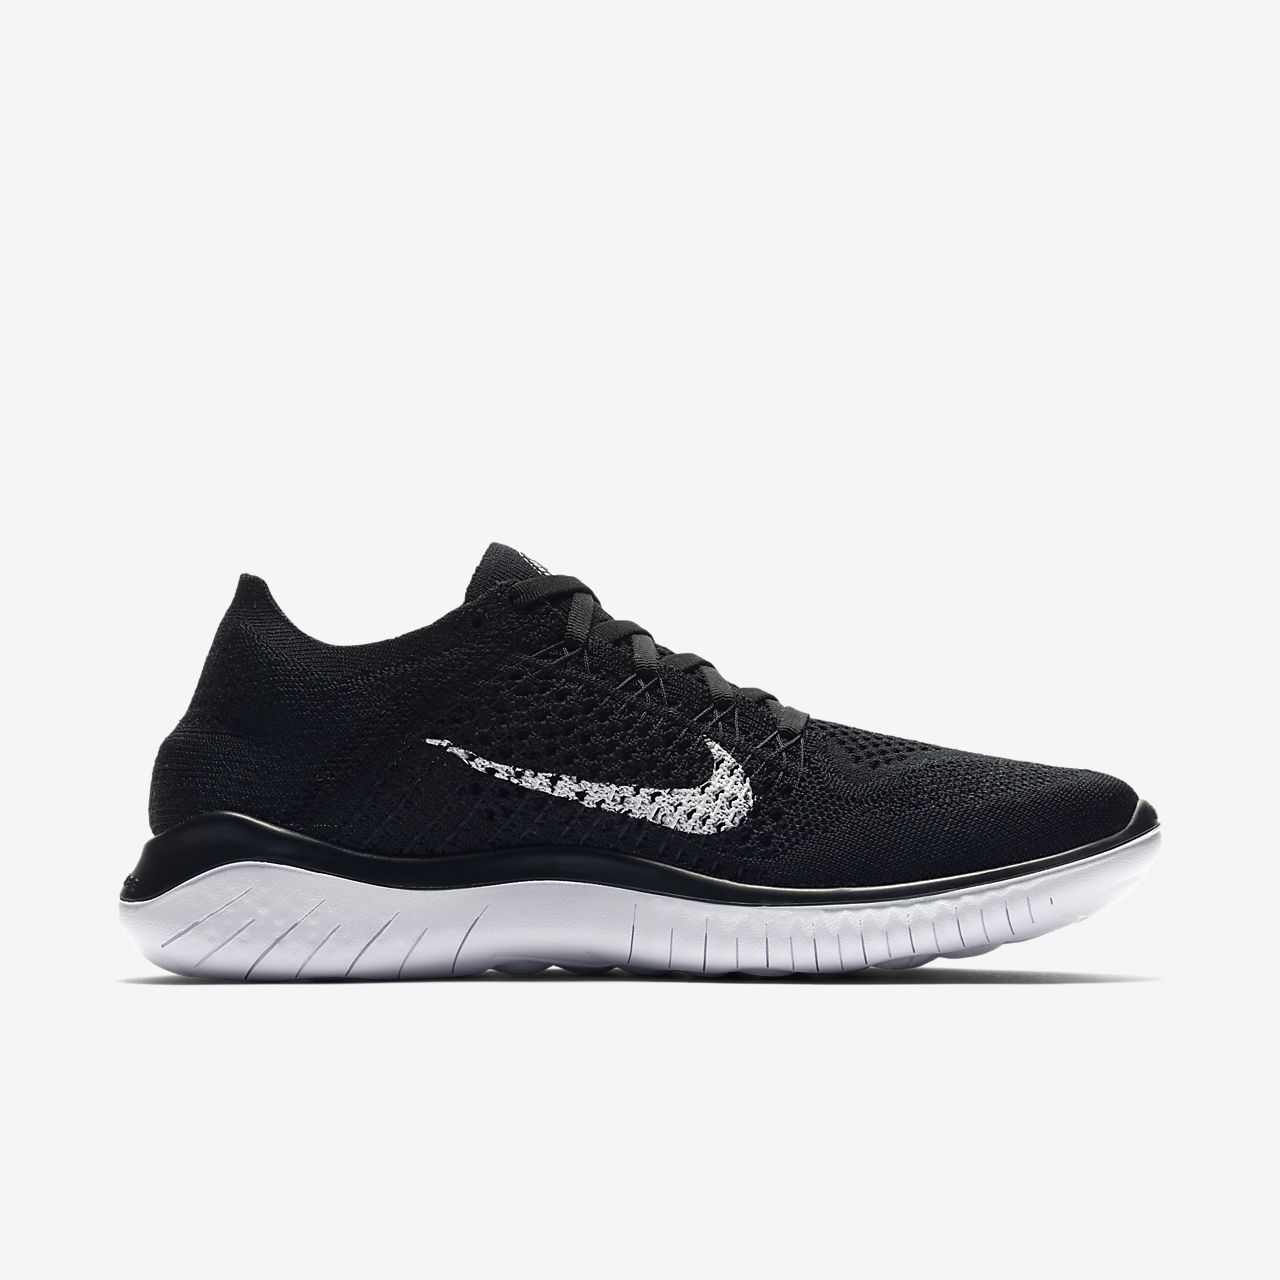 new product 8e546 bb7a5 free-rn-flyknit-2018-running-shoe-9vq7Fr.jpg